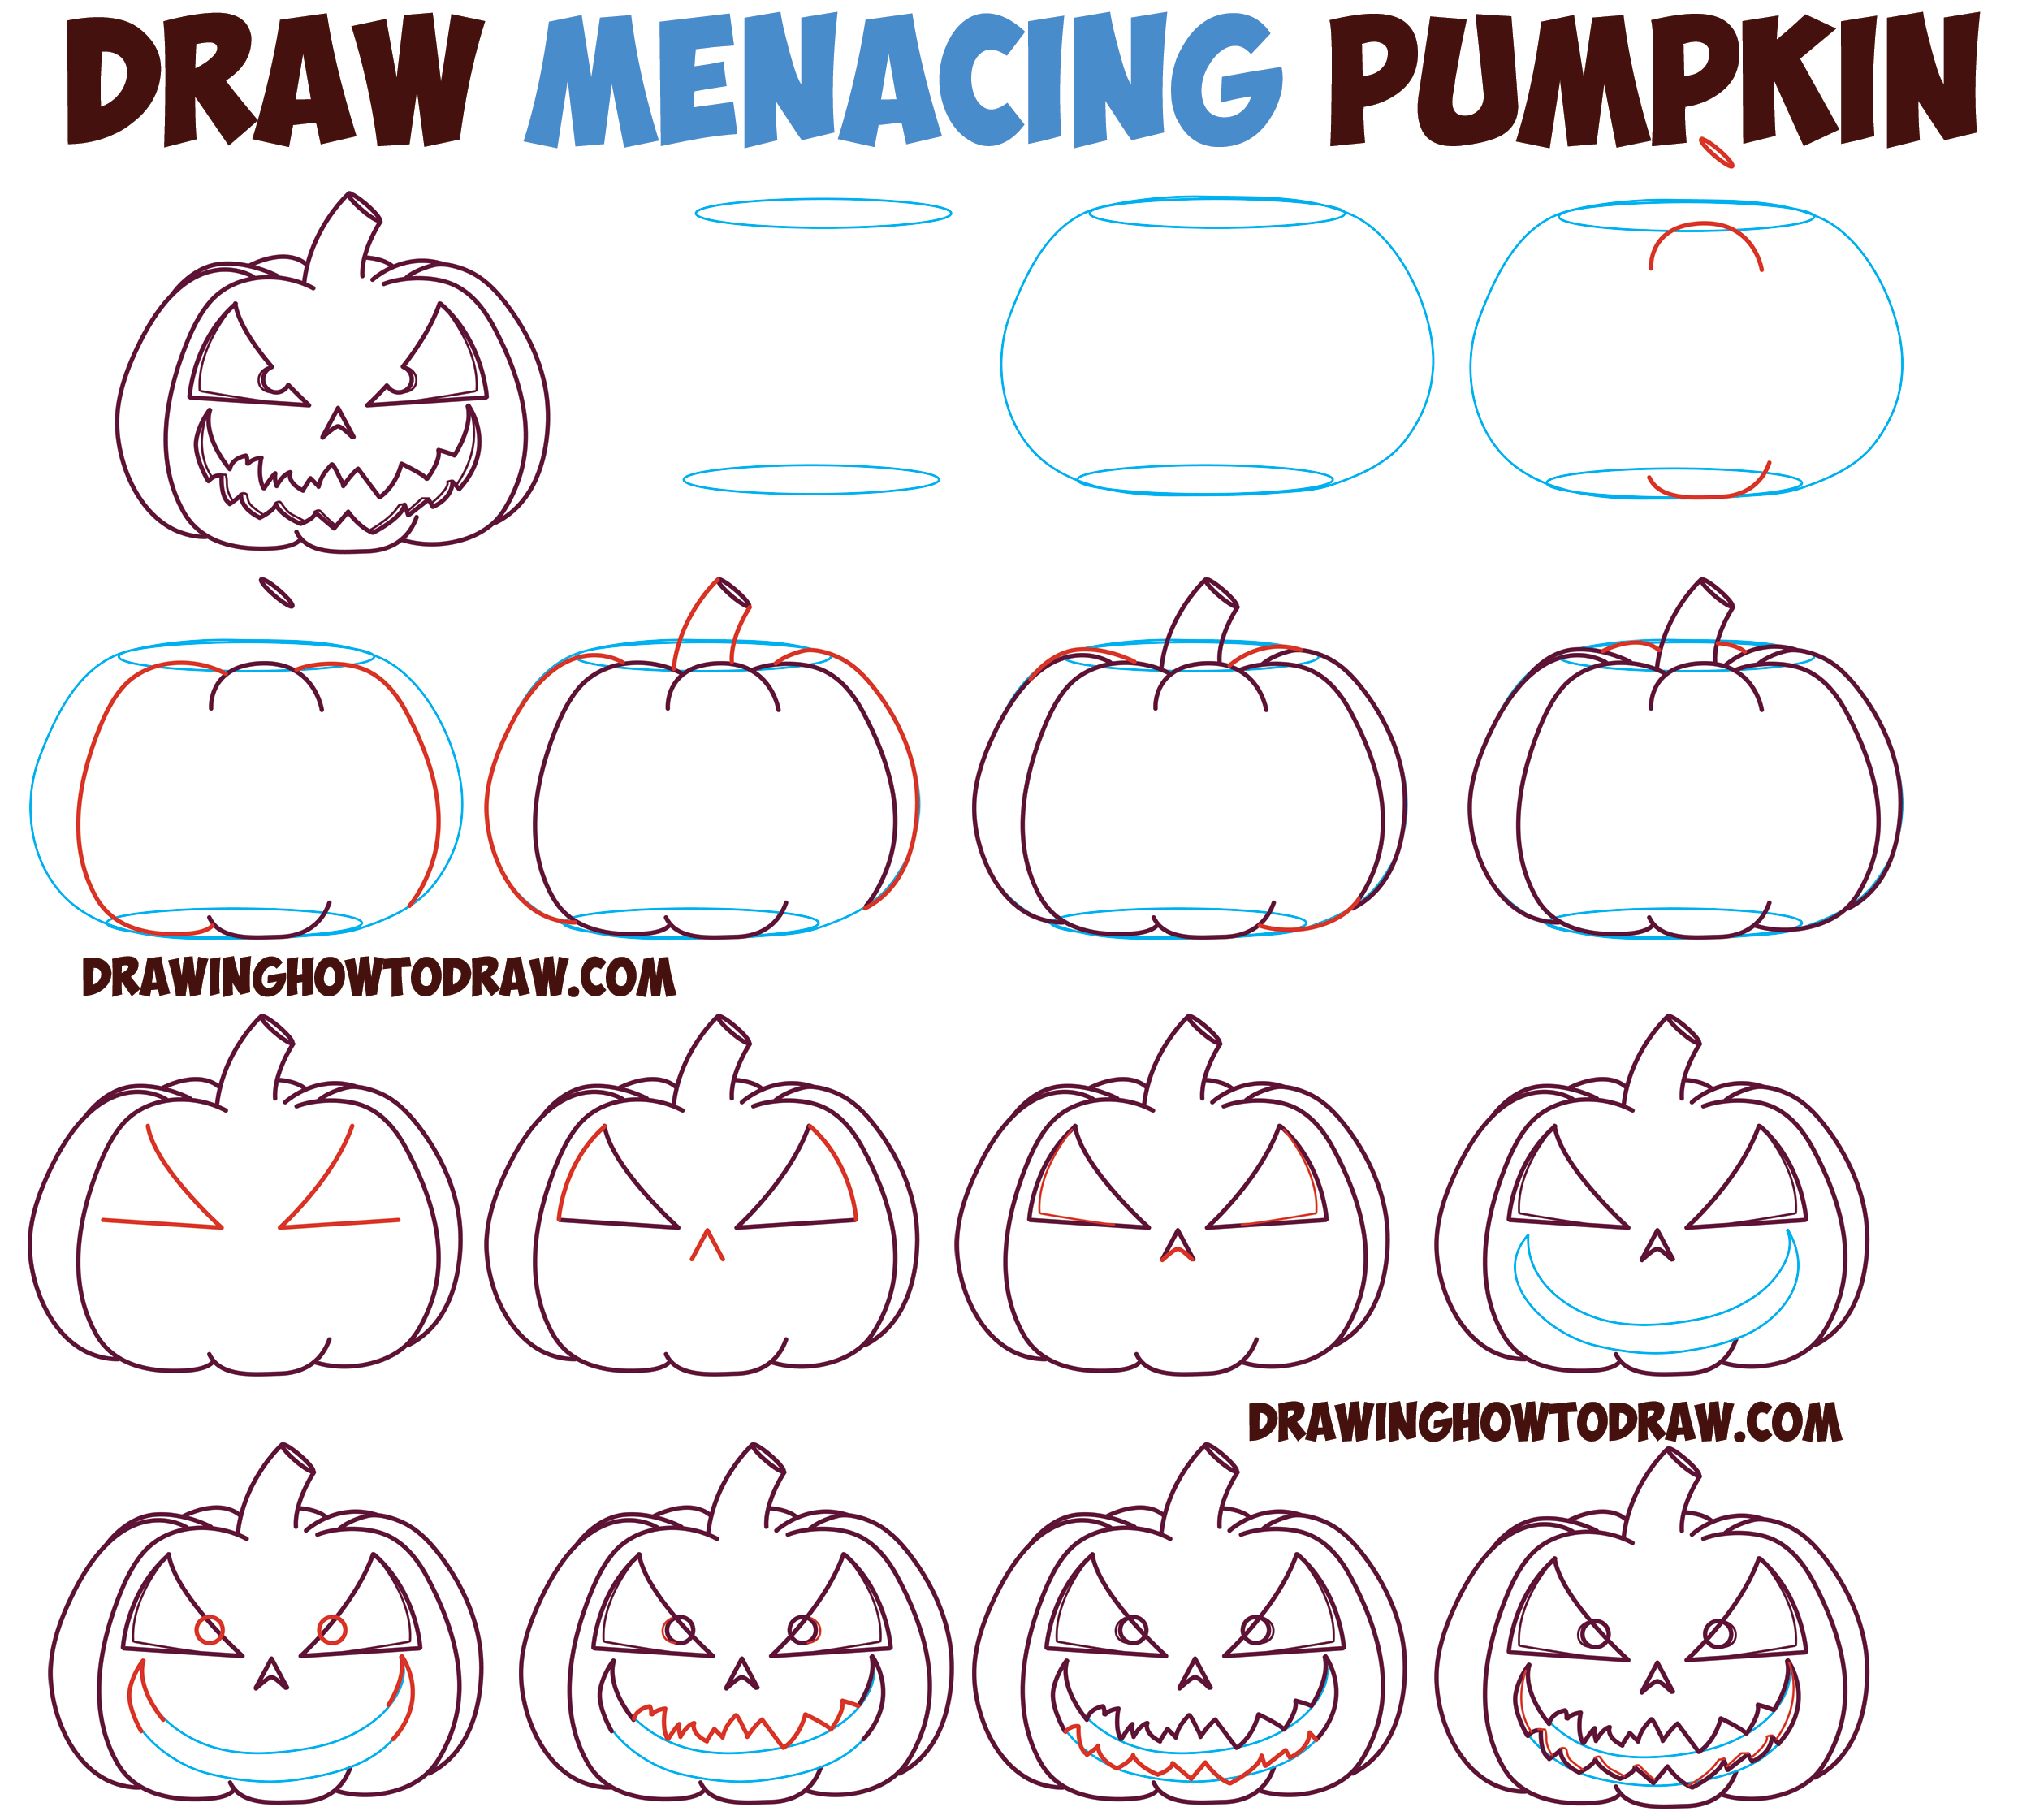 How to Draw Cartoon Pumpkin / Jack O'Lantern : Evil, Angry, Creepy Pumpkin